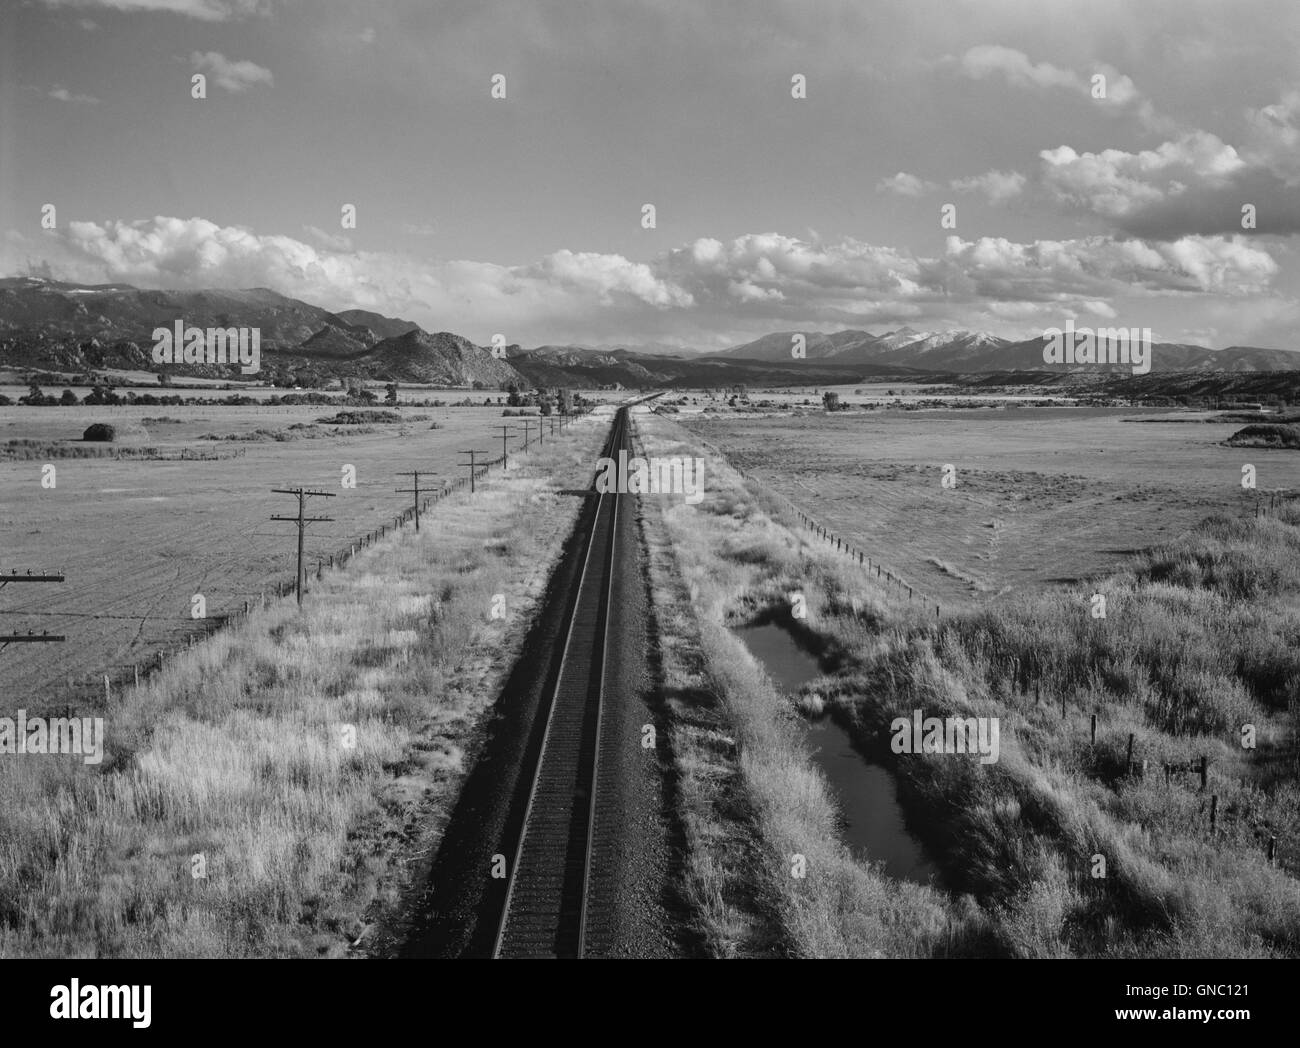 Railroad Tracks with Sawatch Mountains in Background, near Buena Vista, Colorado, Marion Post Wolcott for Farm Security - Stock Image